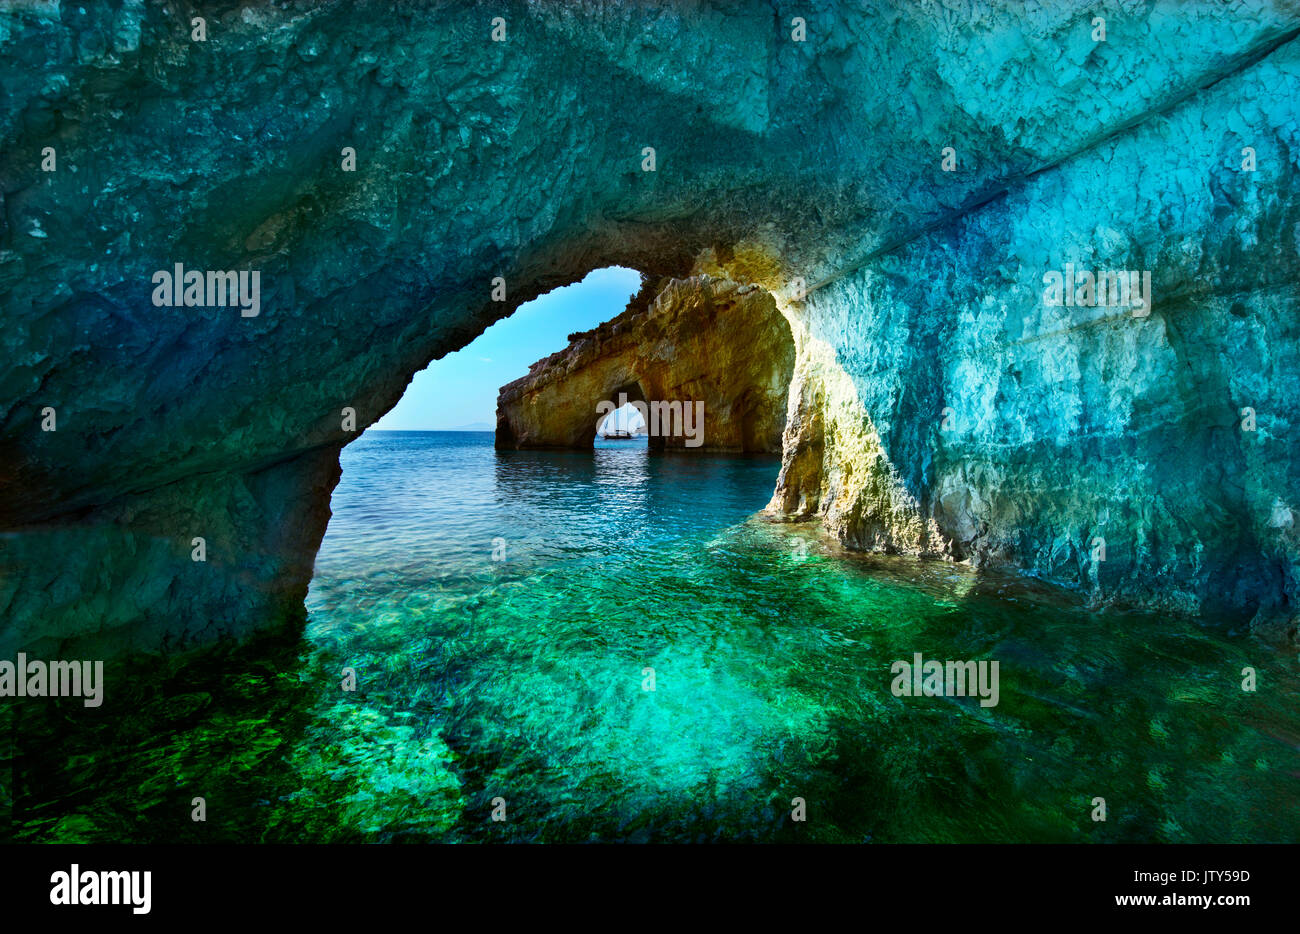 Greece, The island of Zakynthos. One of the most beautiful blue caves in the world. The Ionian Sea.  Blue caves of the island of Zakynthos - Stock Image